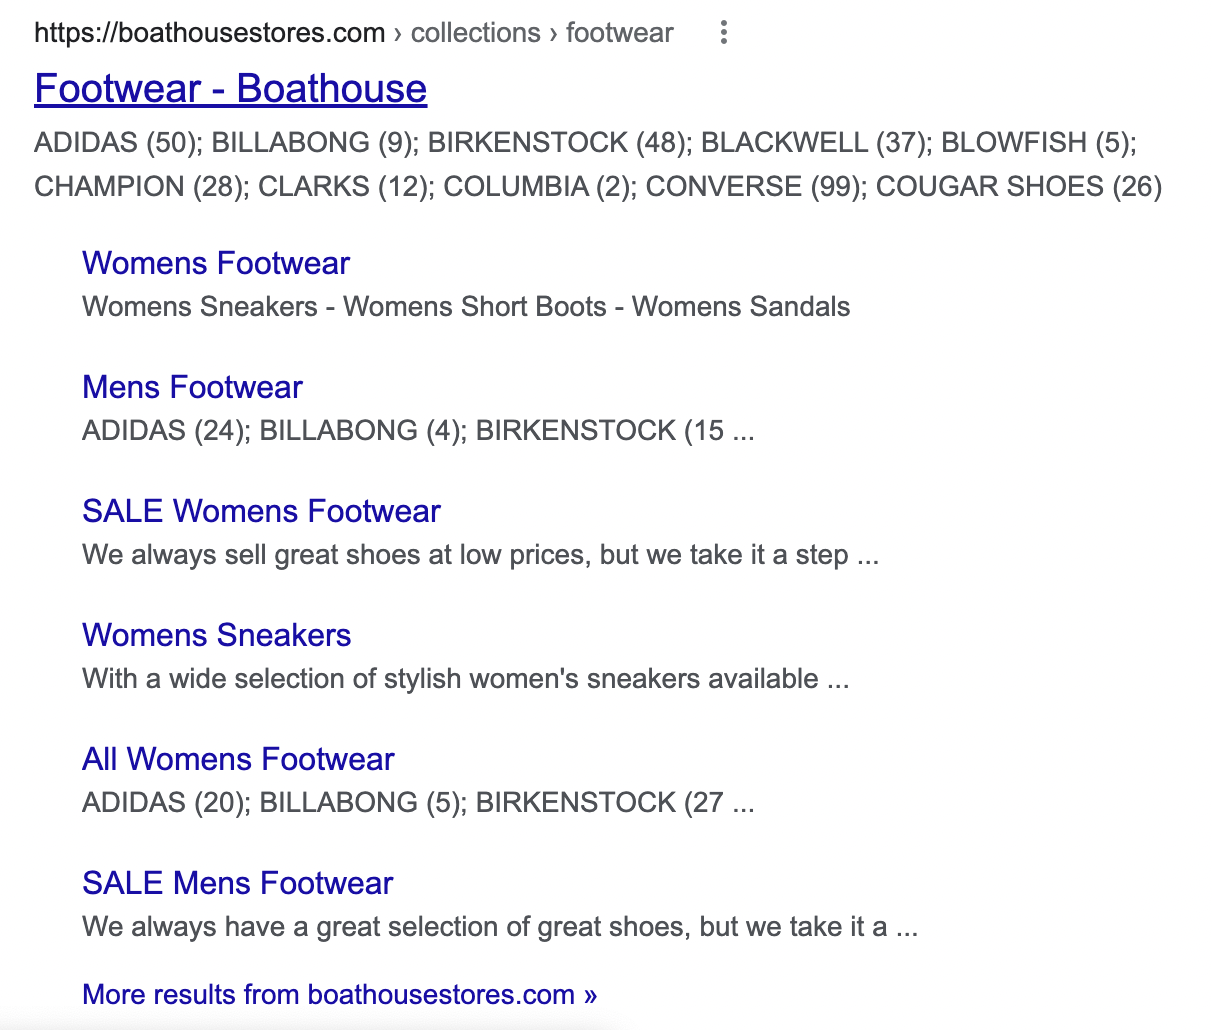 Boathouse footwear Google search results page